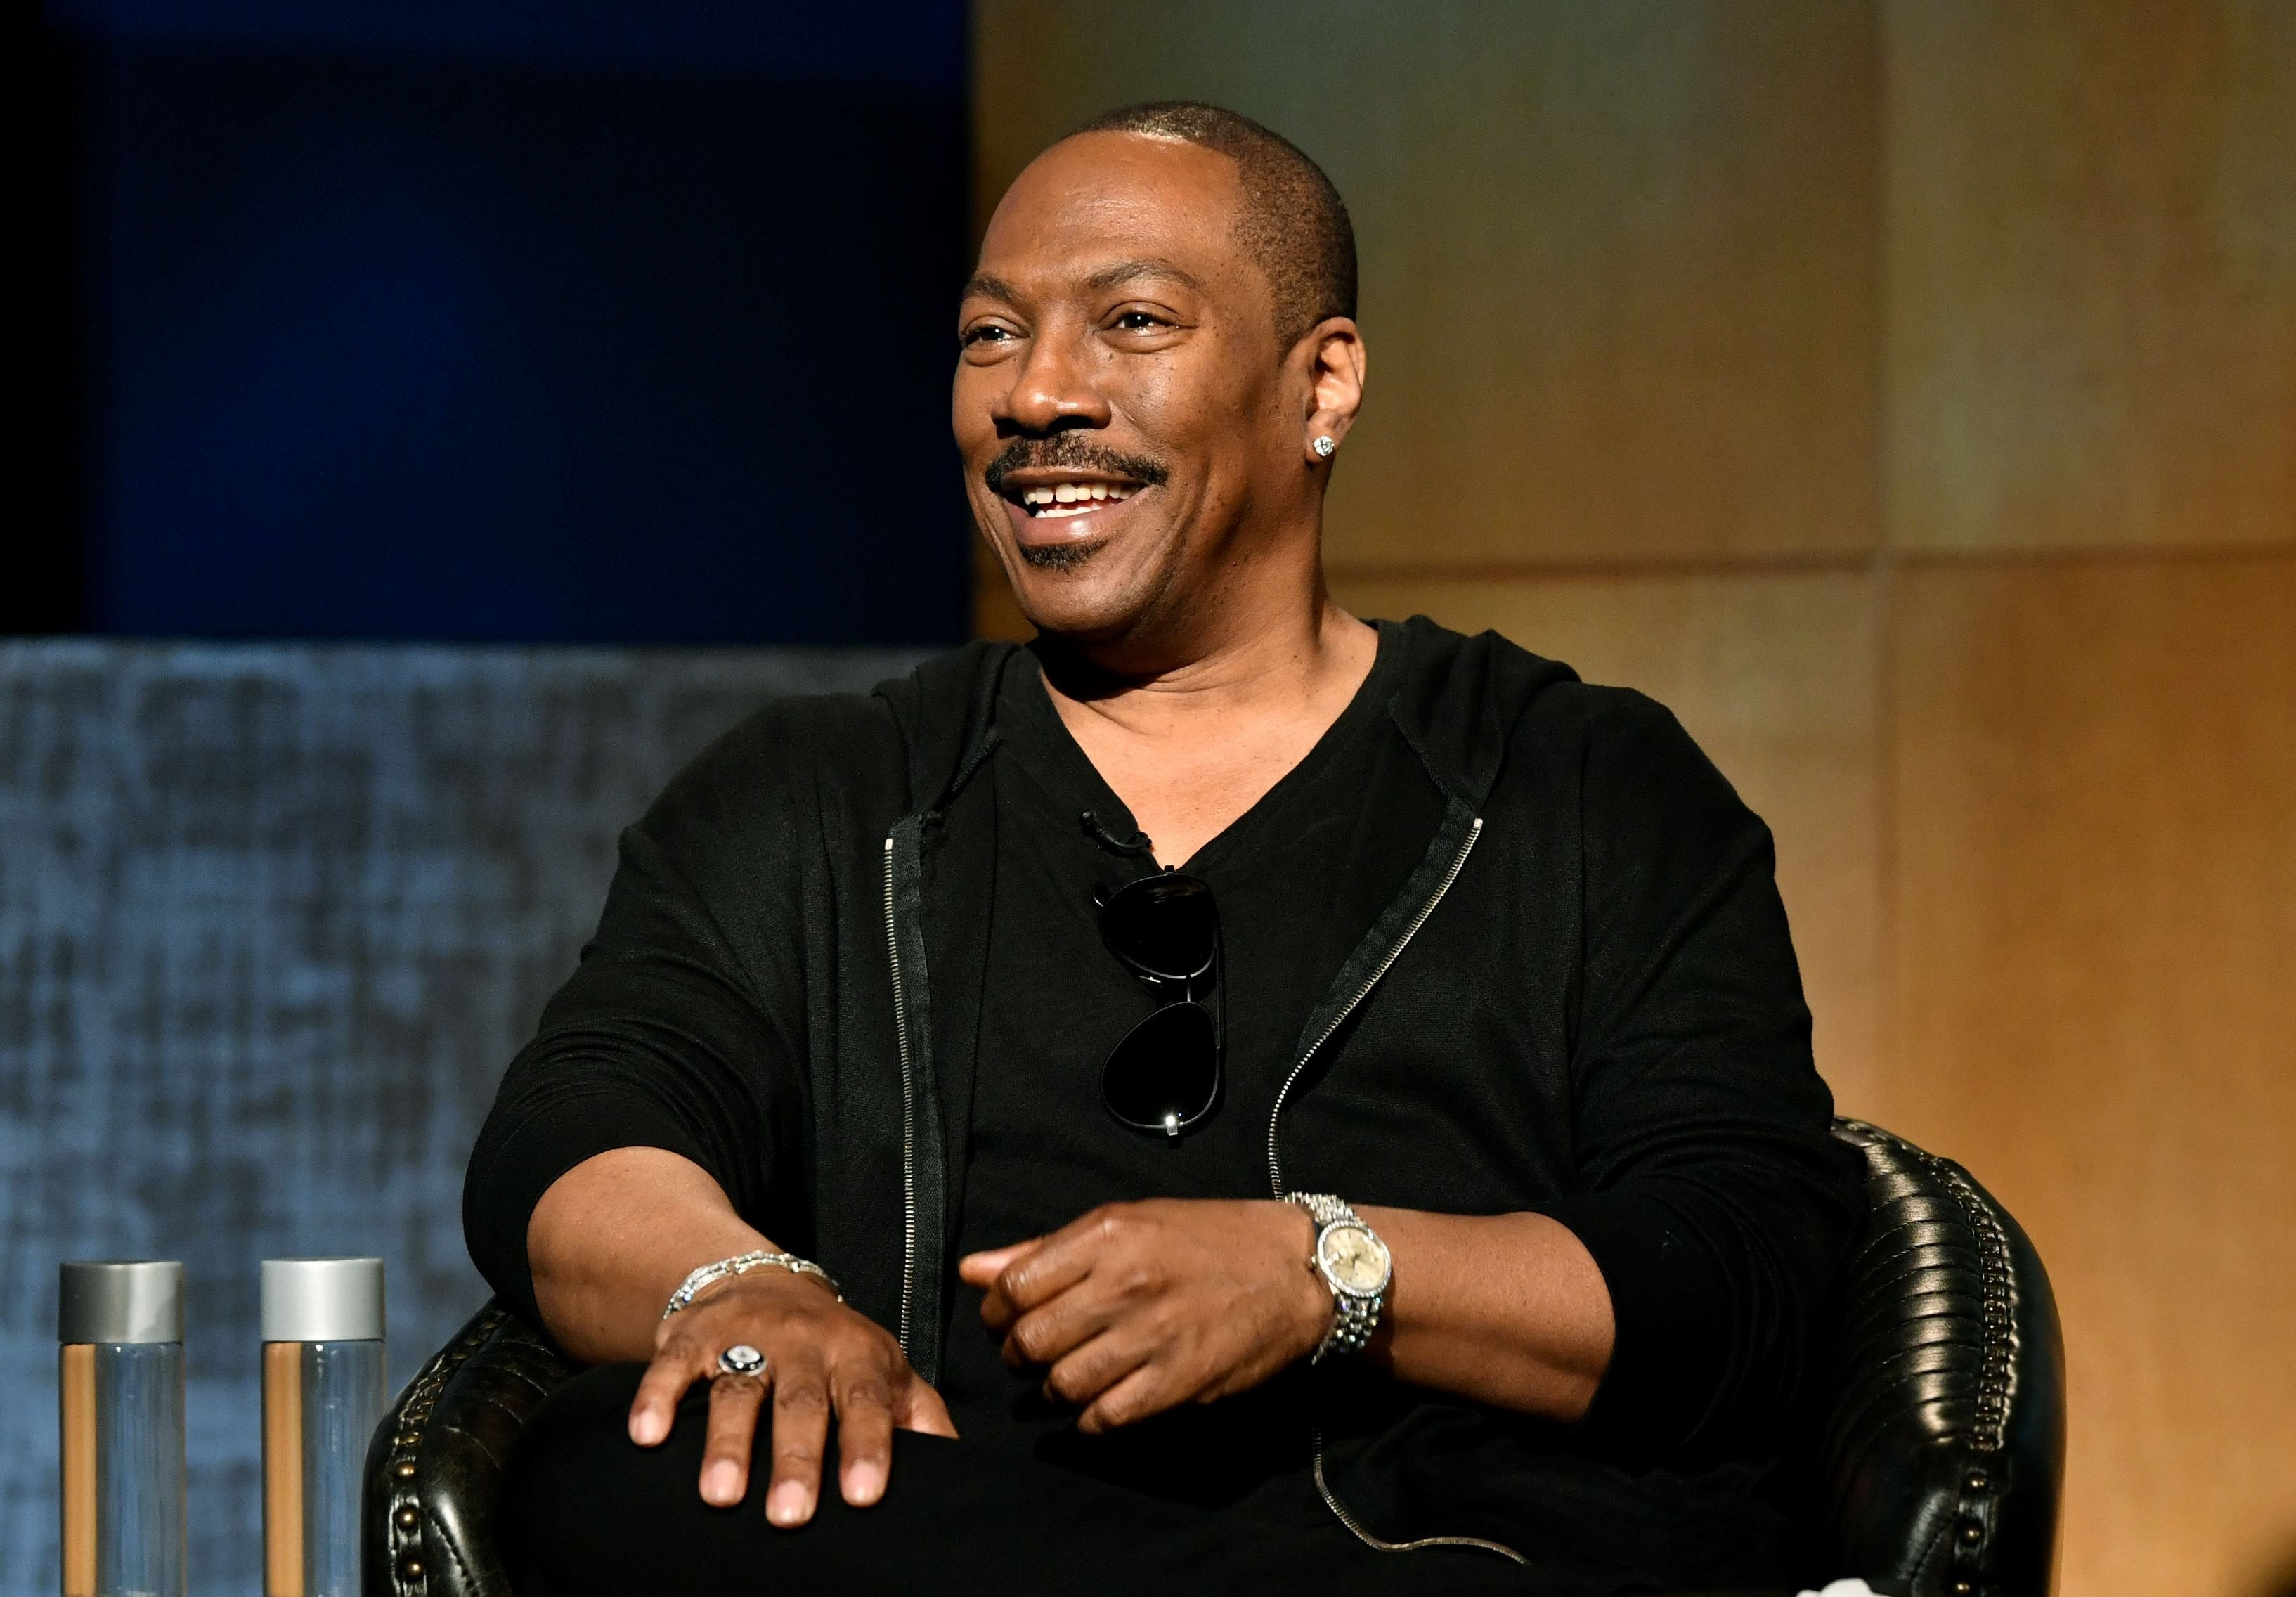 """Eddie Murphy at the LA Tastemaker event for """"Comedians in Cars"""" in Beverly Hills City Photo on July 17, 2019.   Photo: Getty Images"""